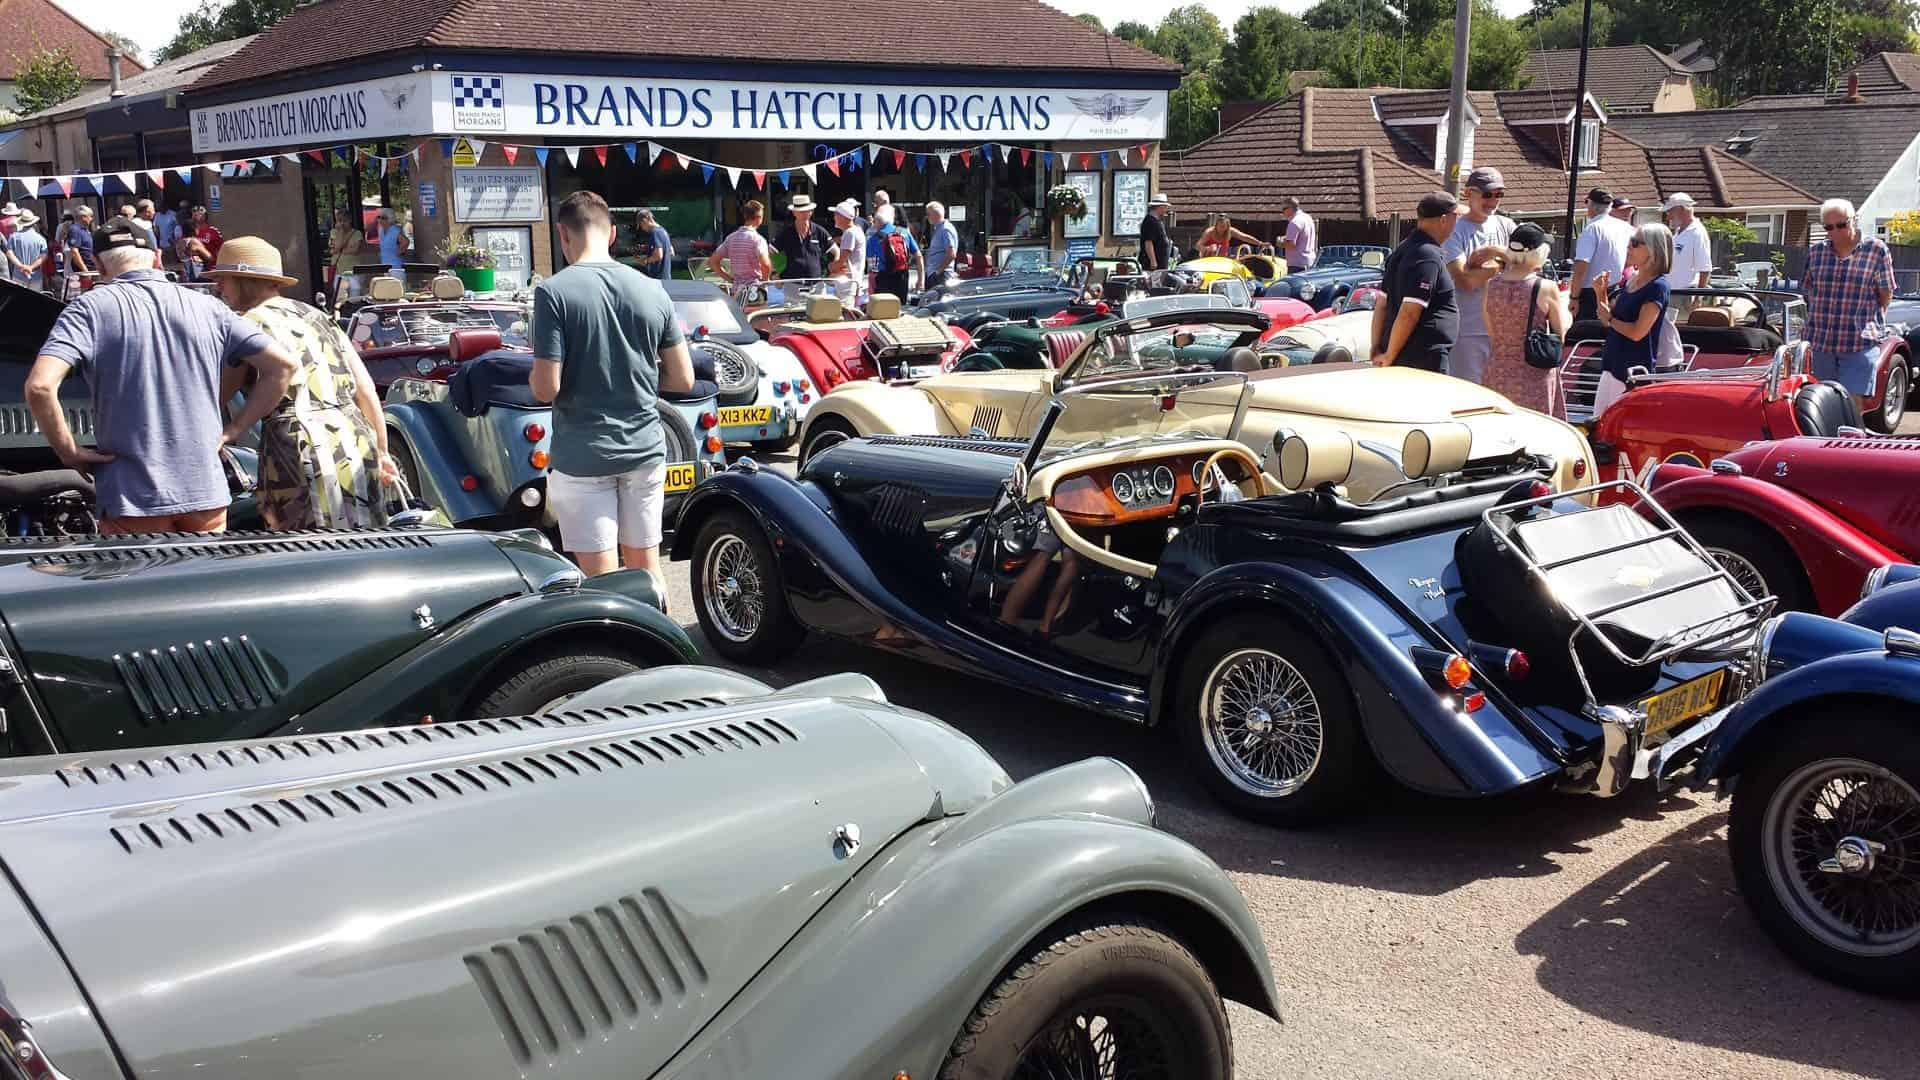 Brands Hatch Morgans